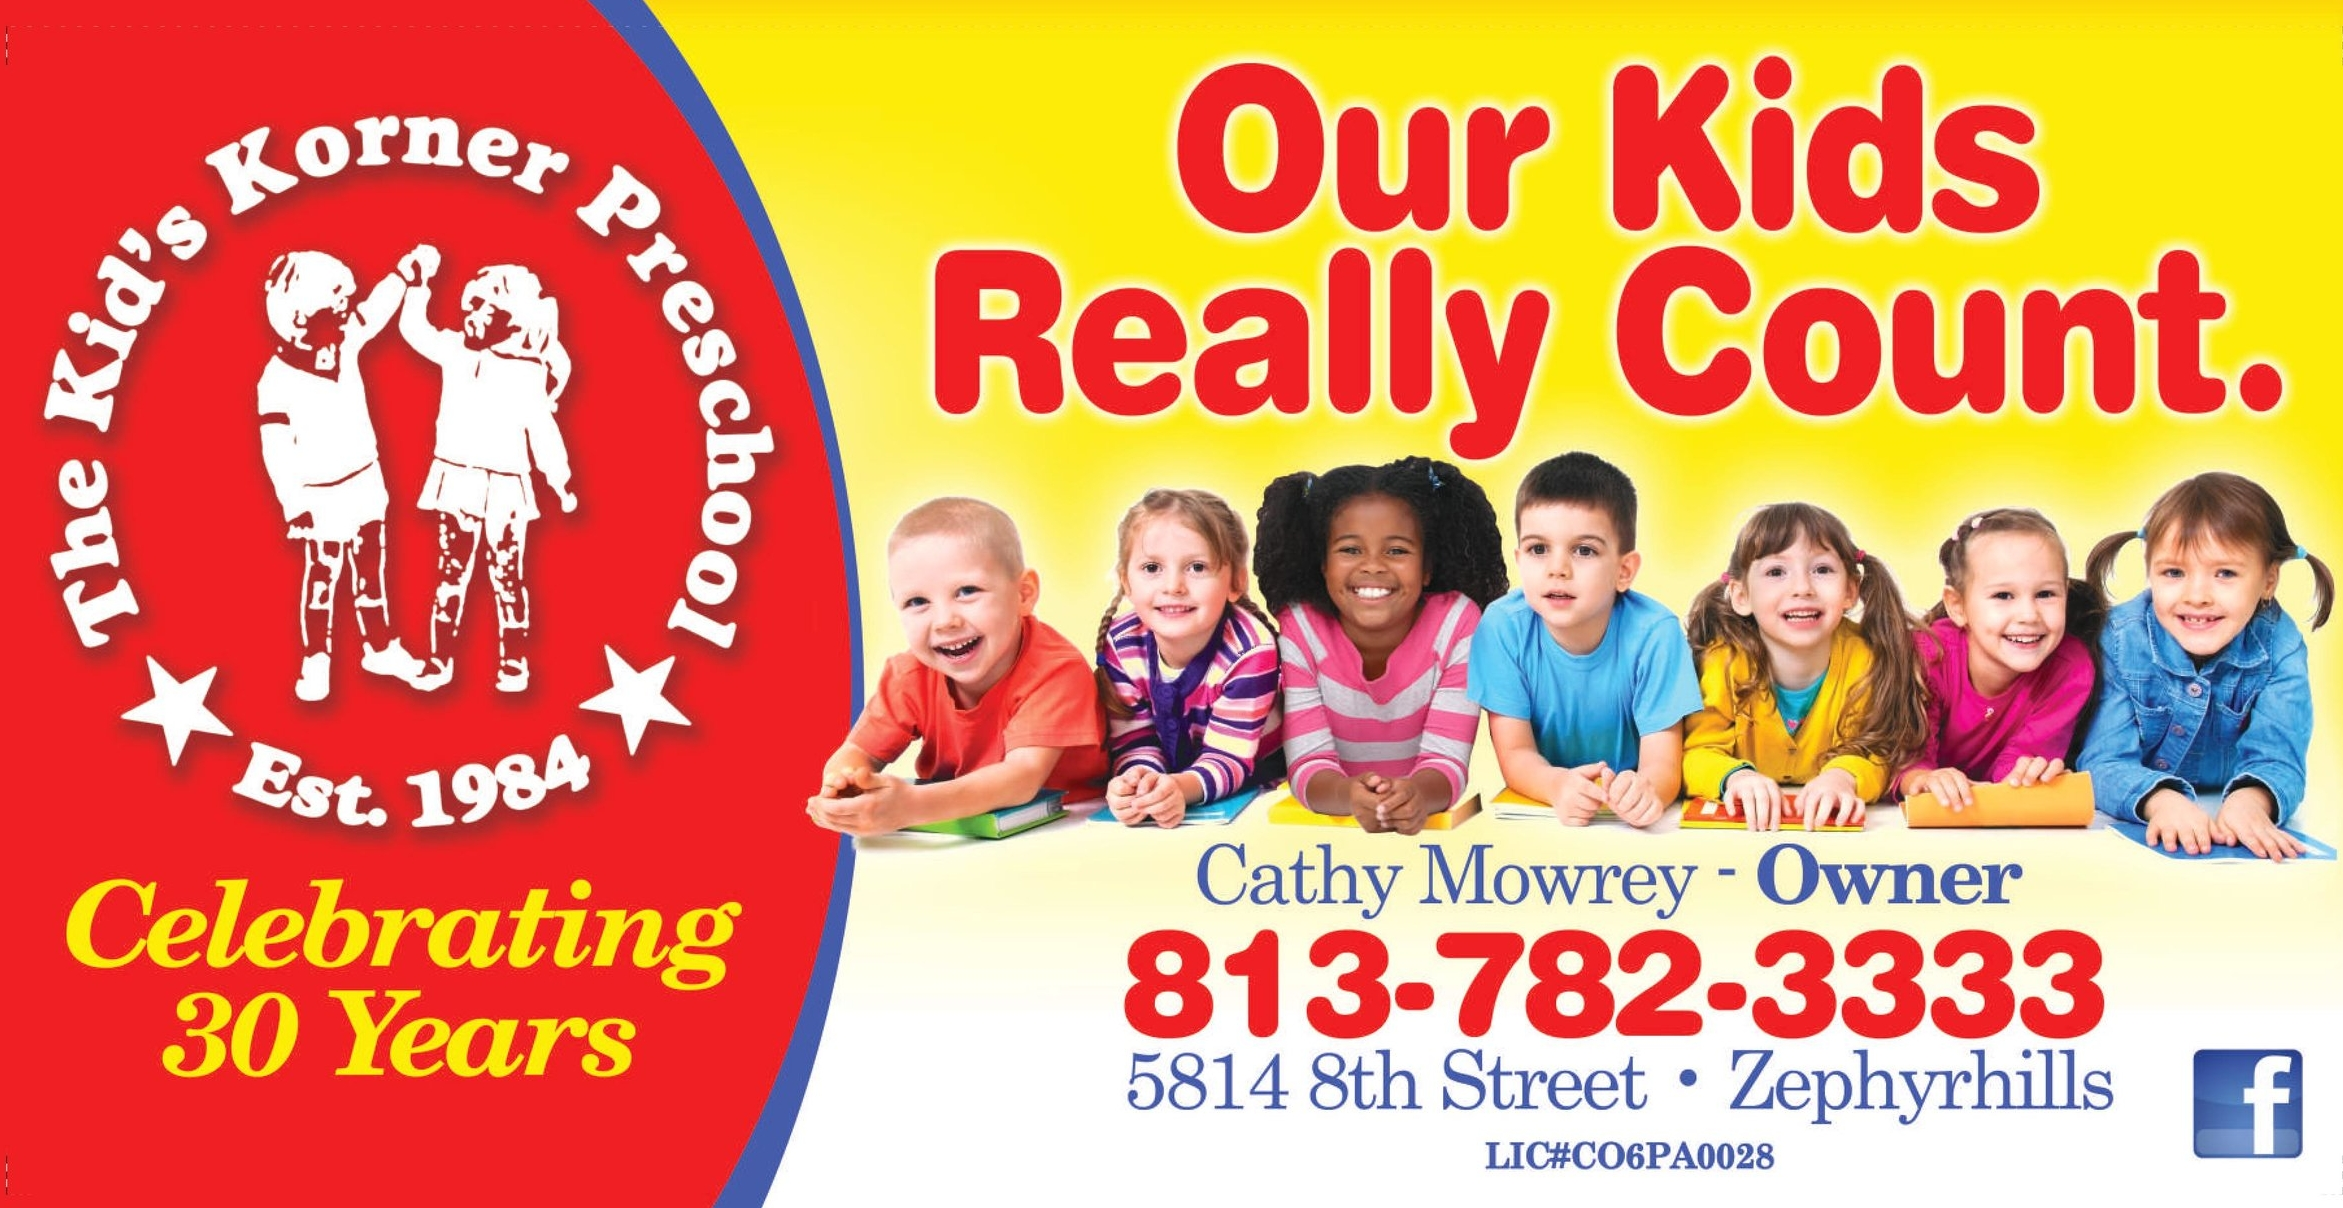 Kid's Korner Preschool   Address: 5814 8th St. Zephyrhills  Phone: 813-782-3333  Email: kids.korner.zhills@verizon.net   Website    Facebook